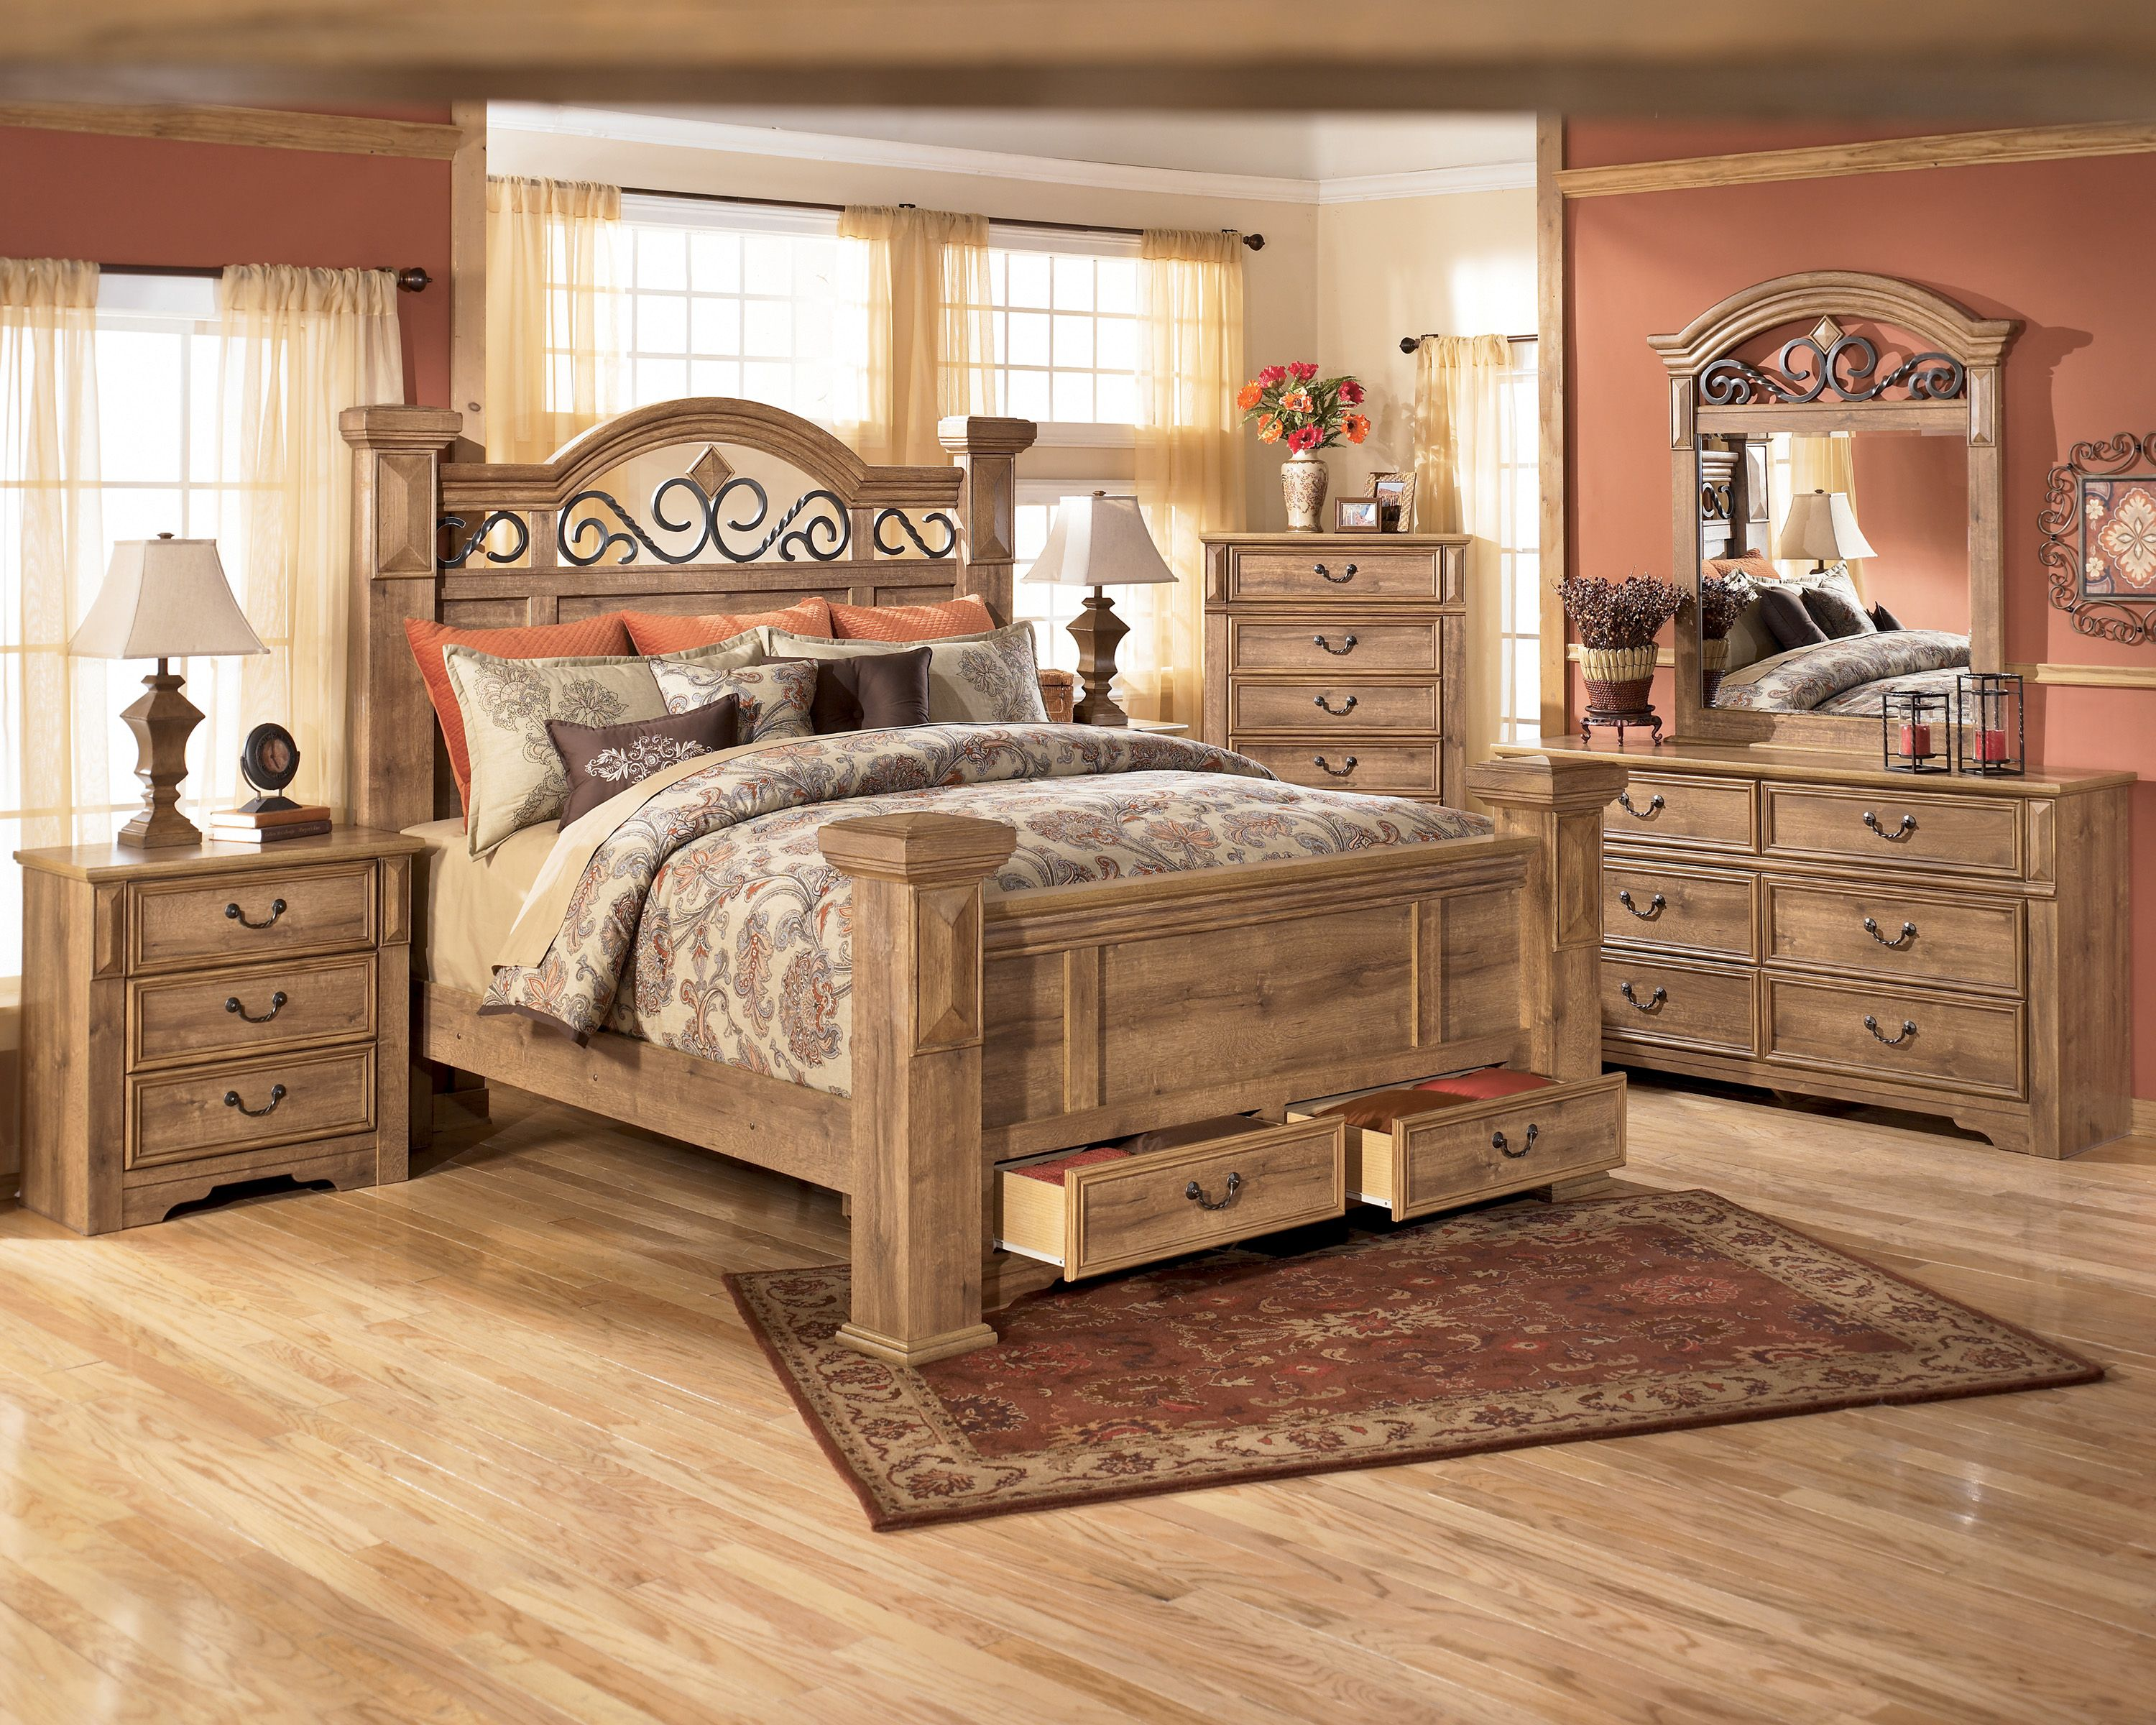 Best King Size Bed Set Rosalinda Rustic Bedroom Furniture Sets Vintage